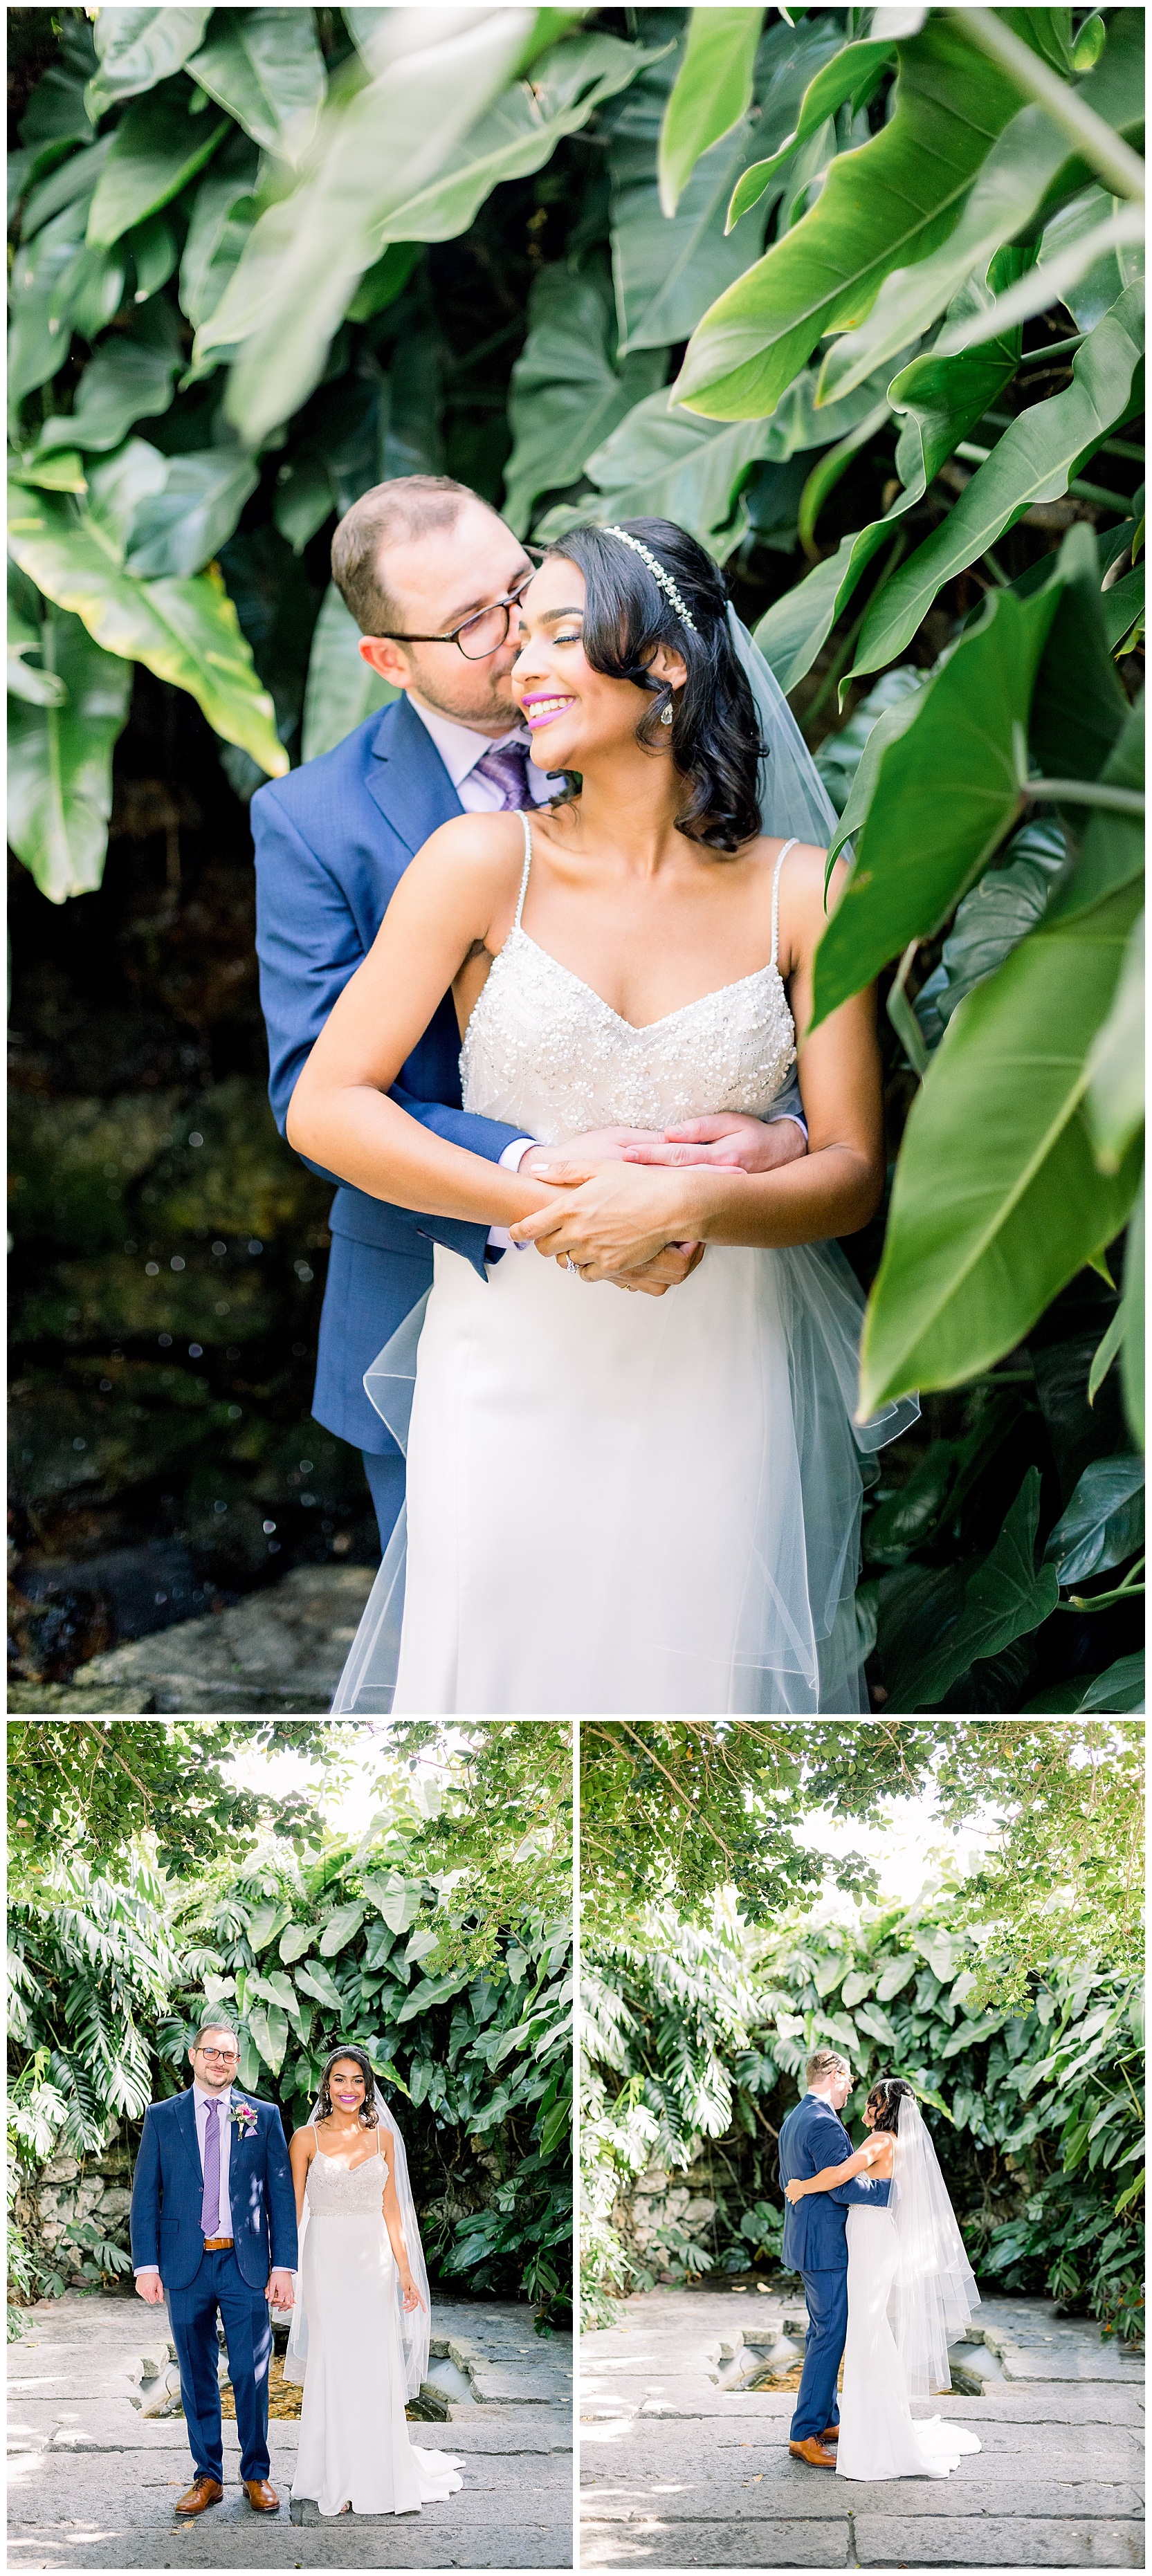 jessicafredericks_lakeland_tampa_wedding_purple_crazy hour_0023.jpg